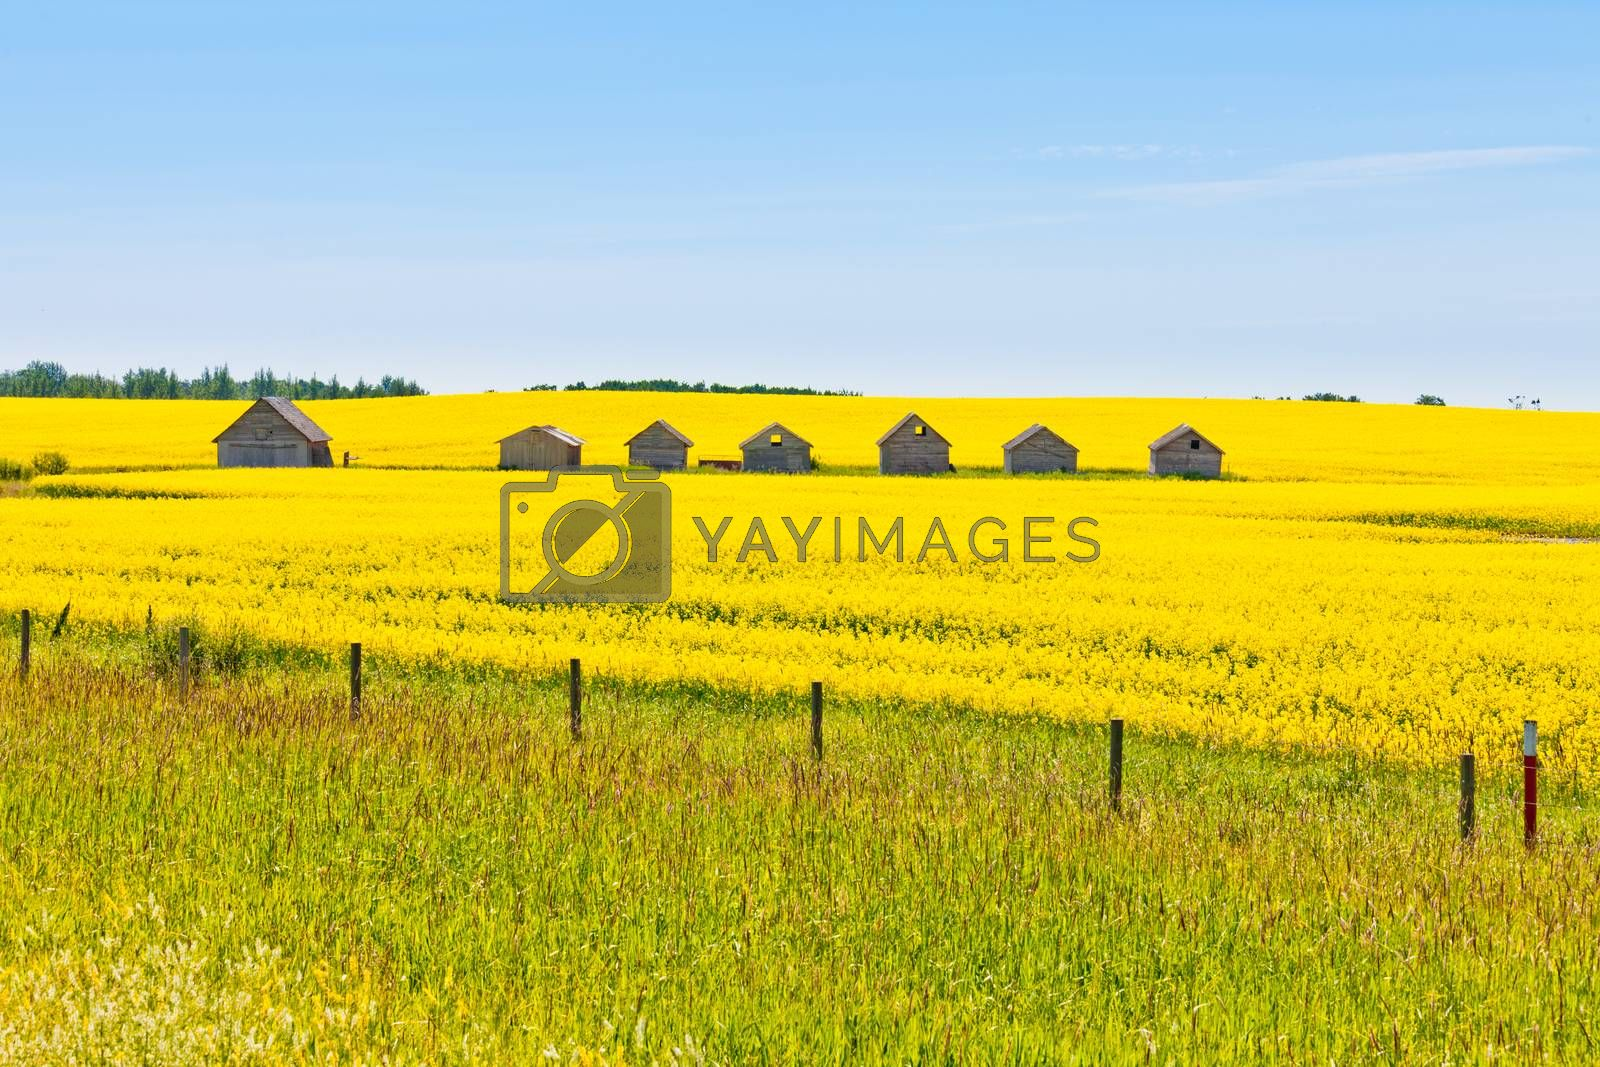 Farm huts canola field agriculture landscape by PiLens